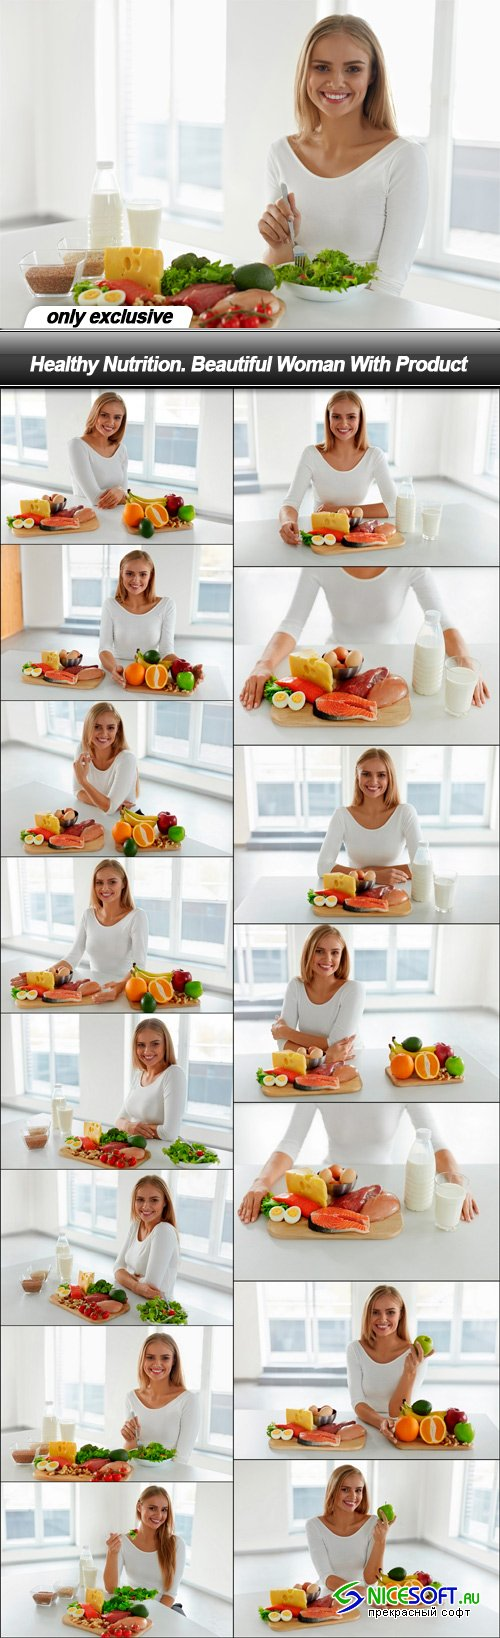 Healthy Nutrition. Beautiful Woman With Product